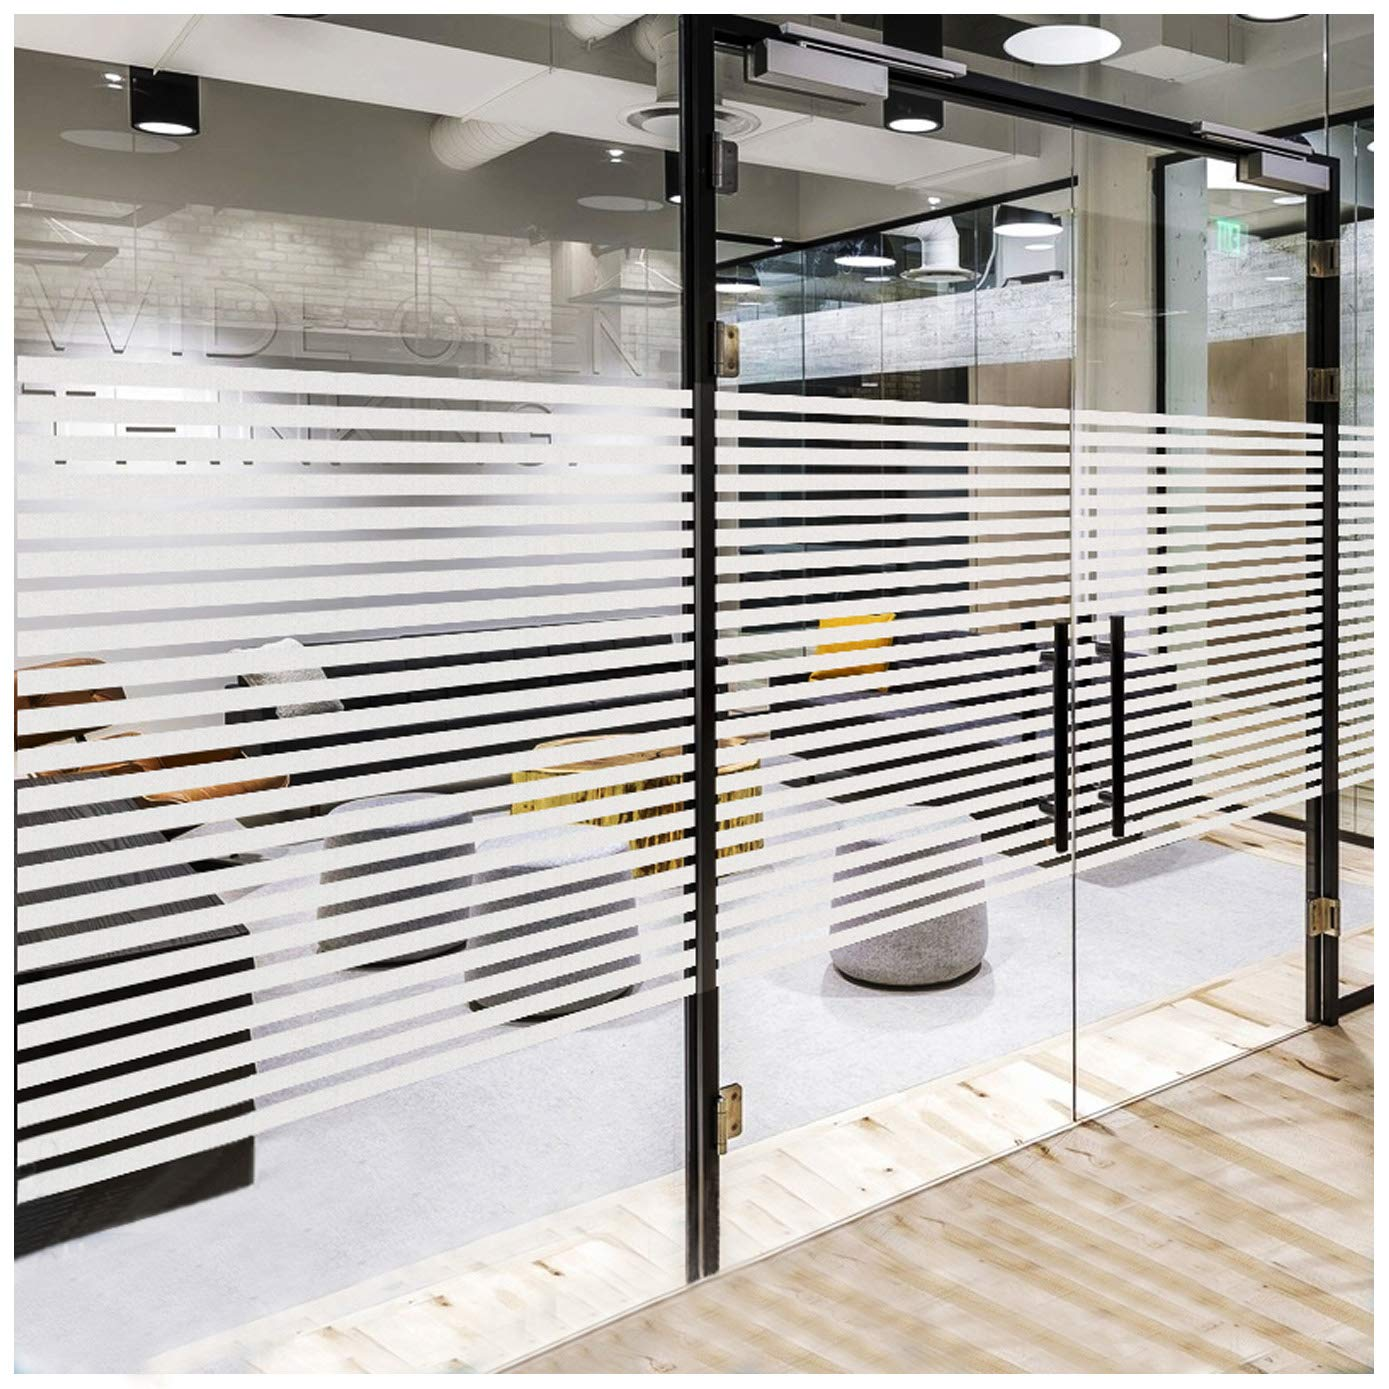 Frosted Window Privacy Clings, Non-Adhesive Window Film Frosting Stripes  Etched Glass Effect for Home Kitchen Office Meeting Room Living Room - Easy